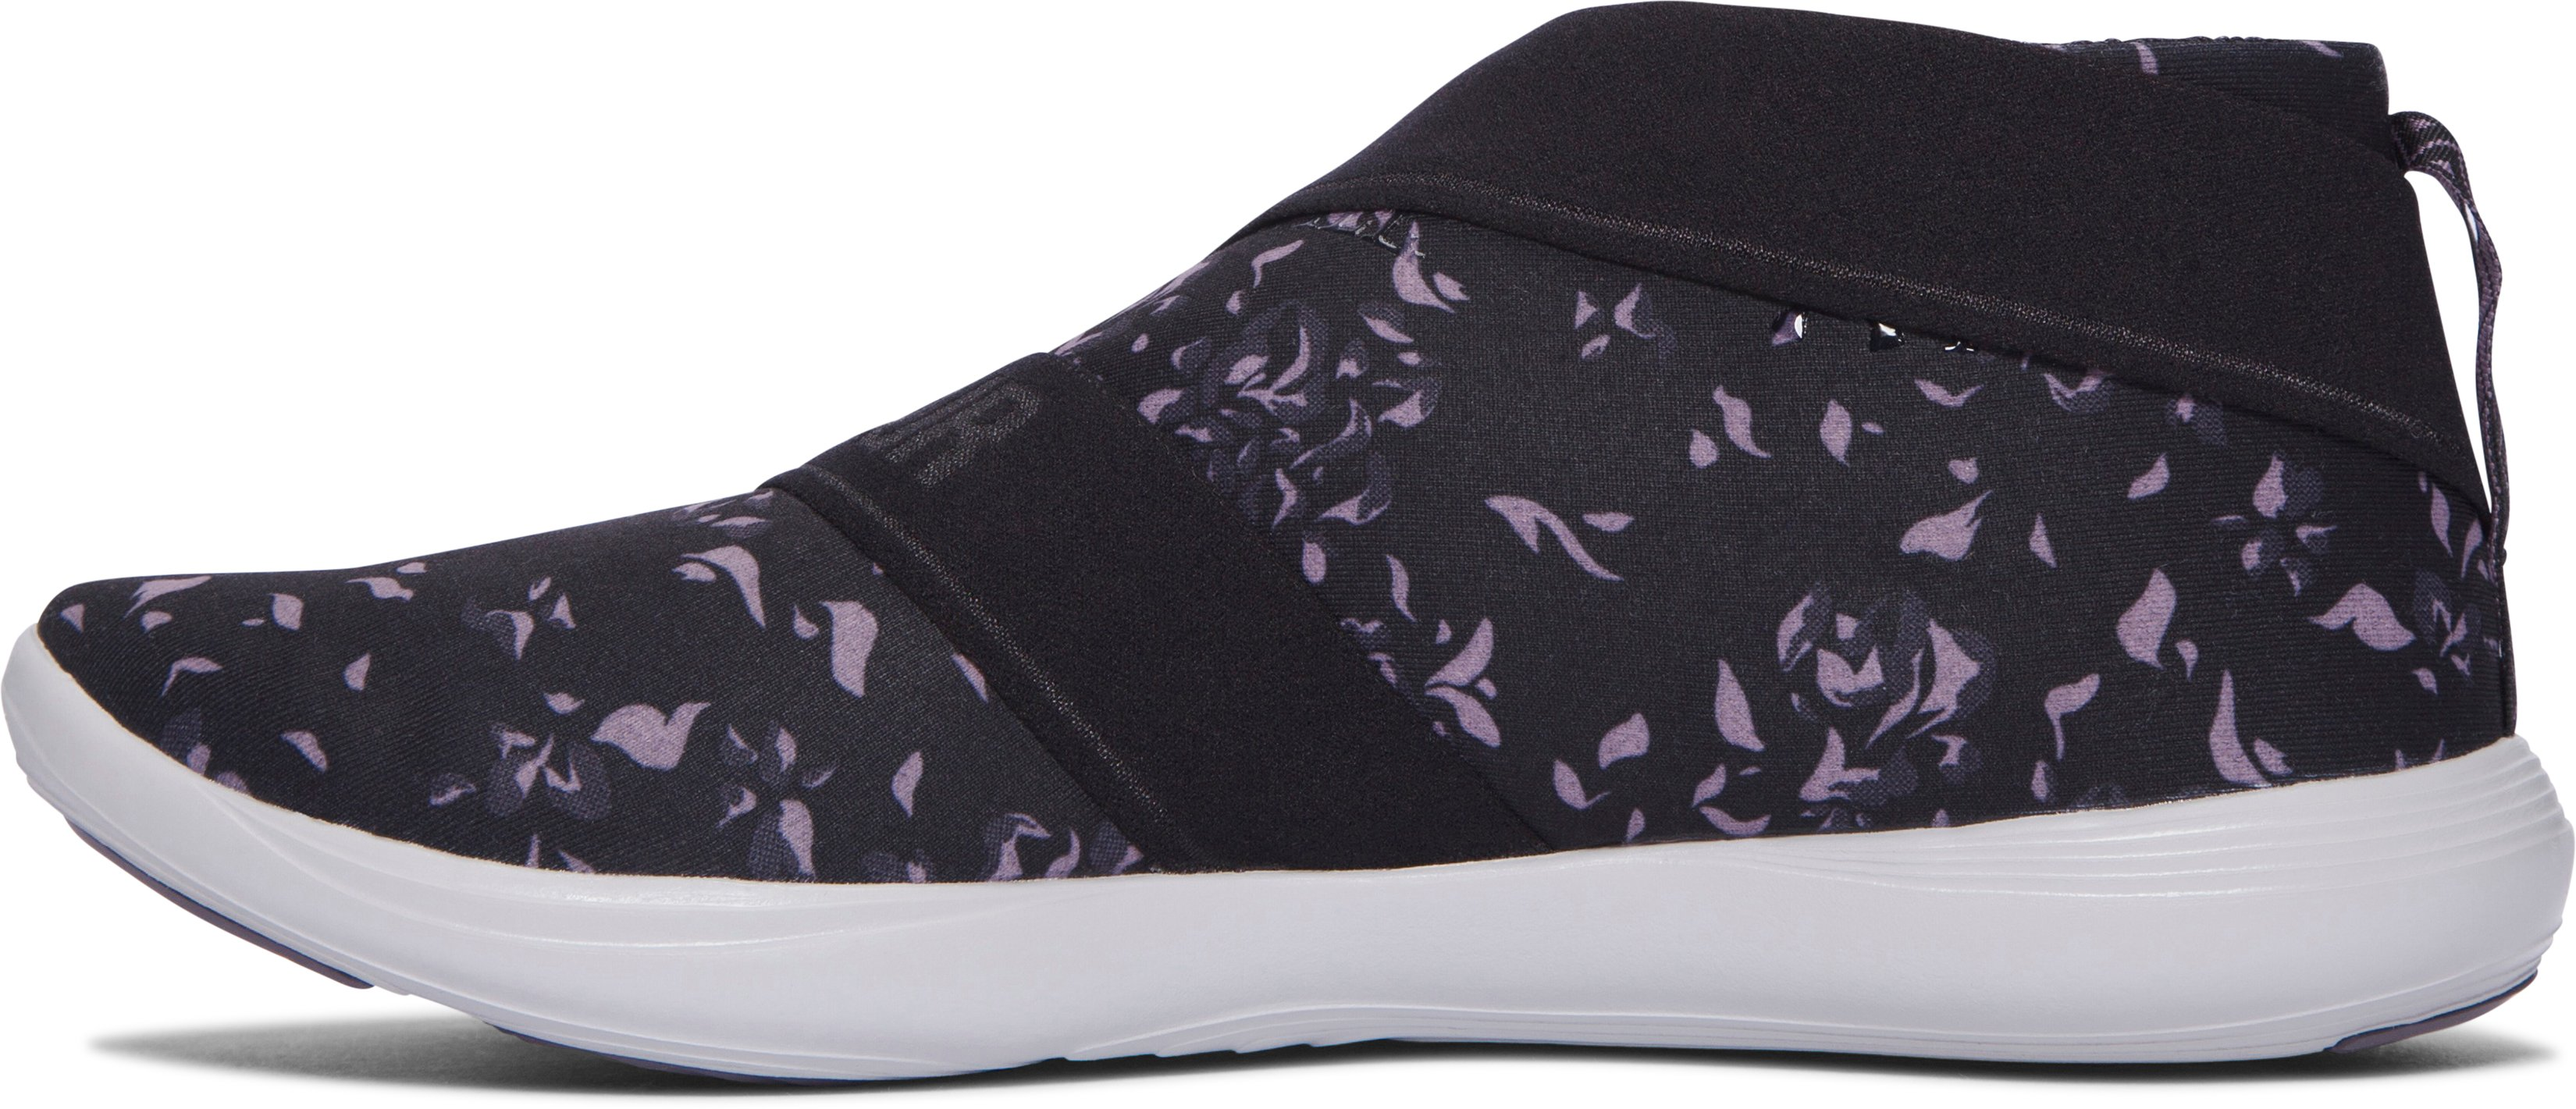 Women's UA Street Precision Slip On Printed Shoes, FLINT, undefined